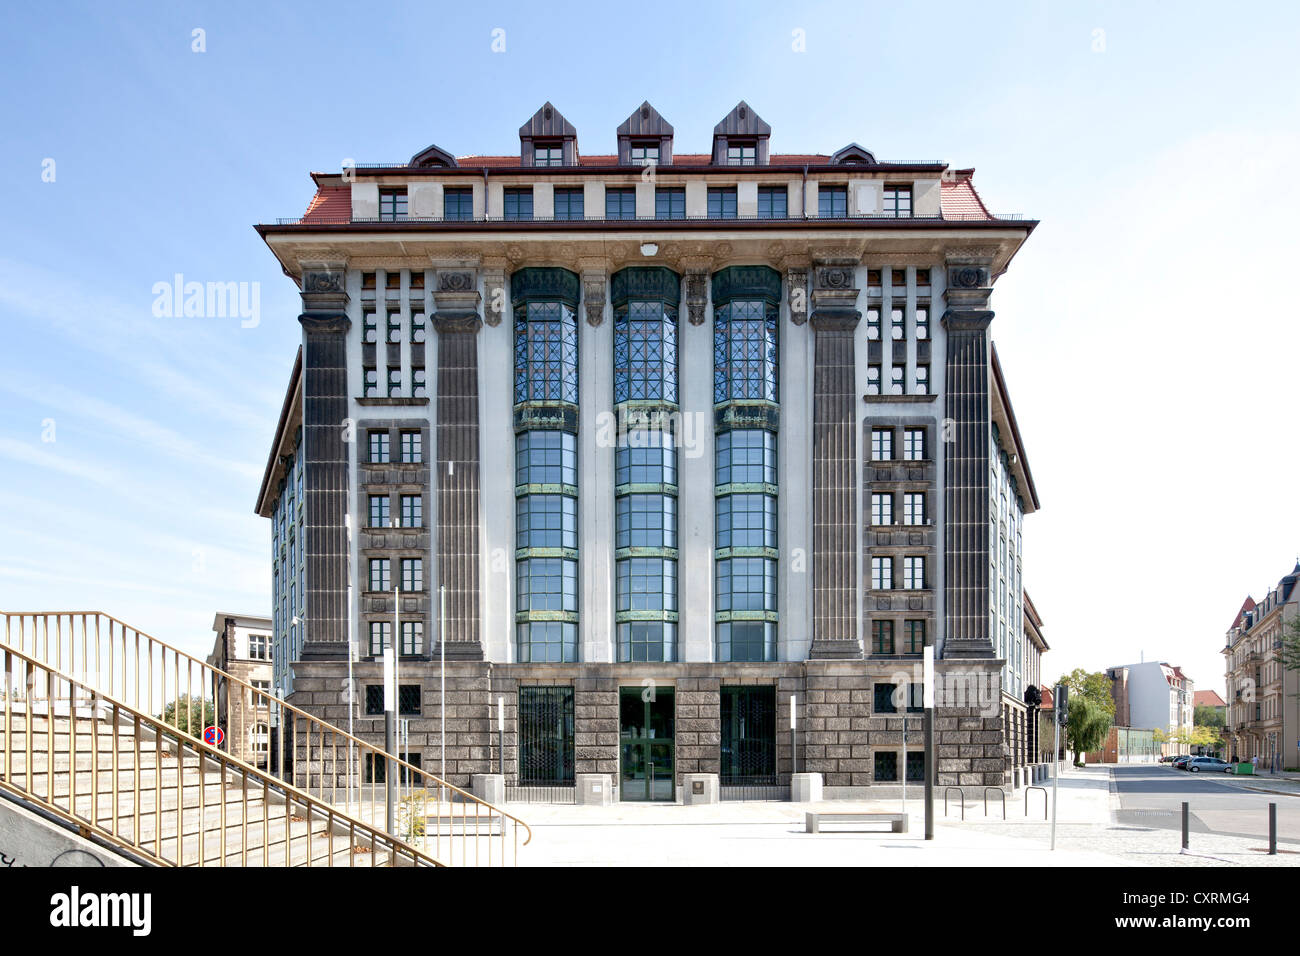 Saxon Main State Archive, Neustadt, Dresden, Saxony, Germany, Europe, PublicGround - Stock Image